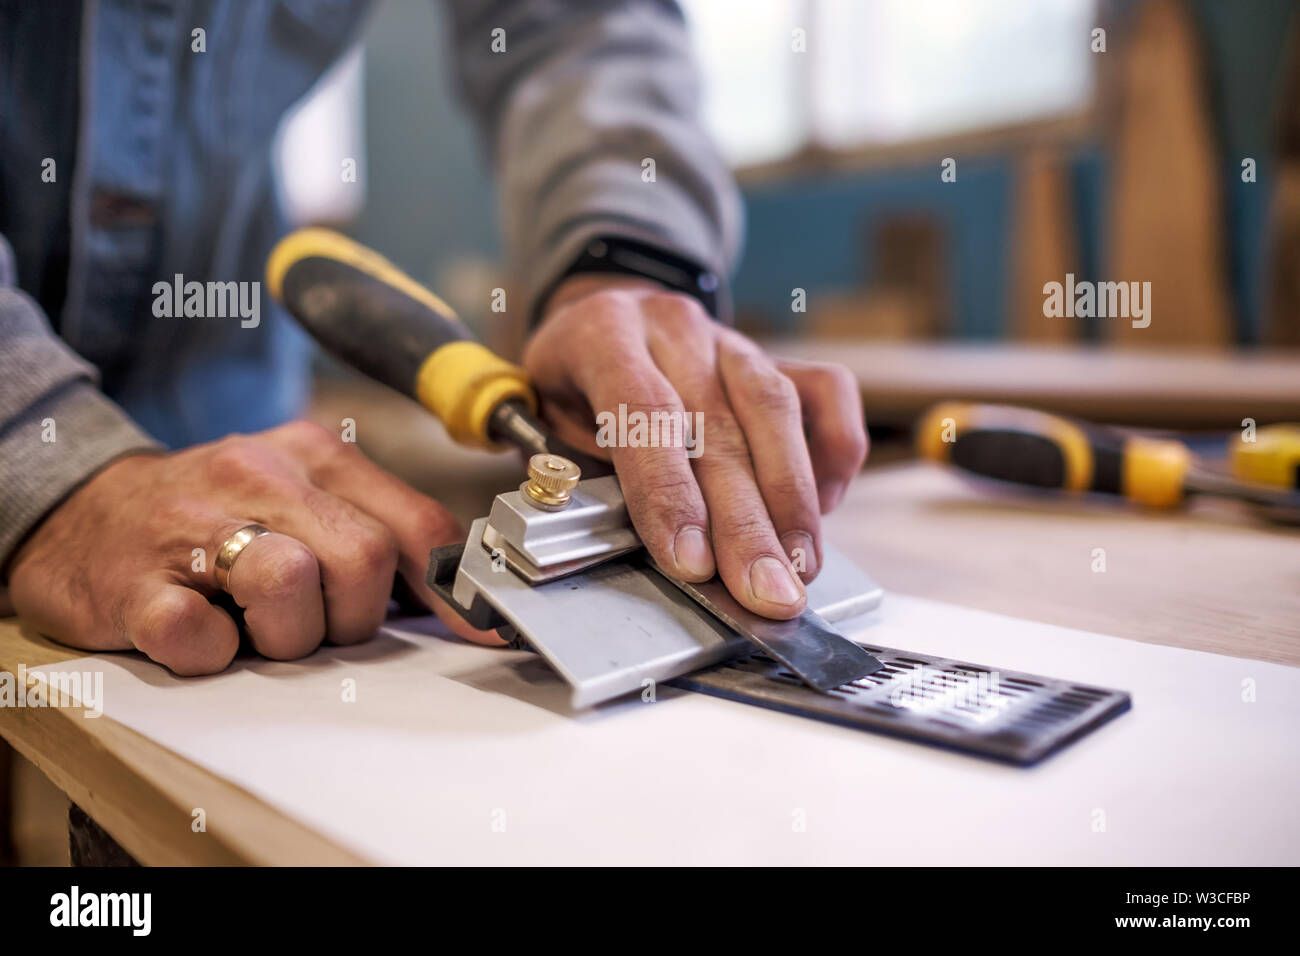 Carpenter sharpening a chisel close up view - Stock Image